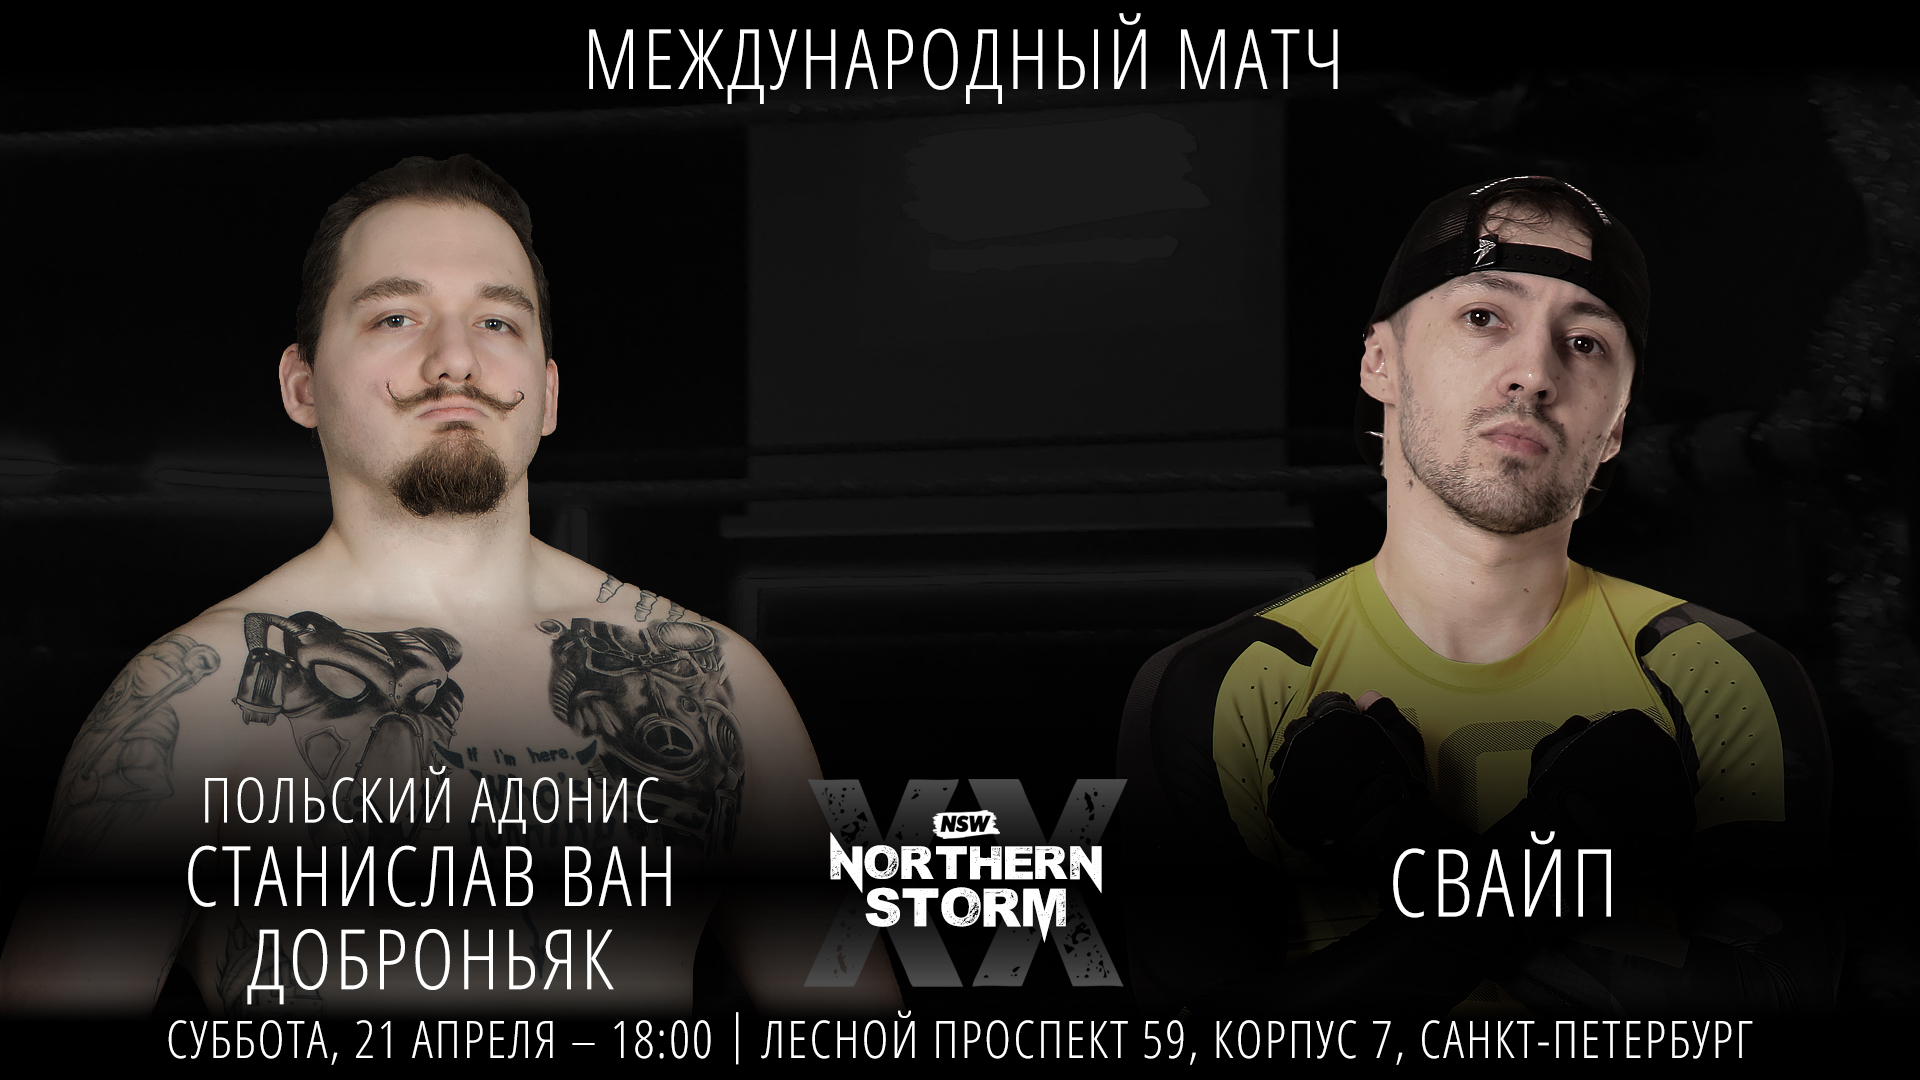 NSW Northern Storm XX: Станислав Ван Доброньяк против Свайпа